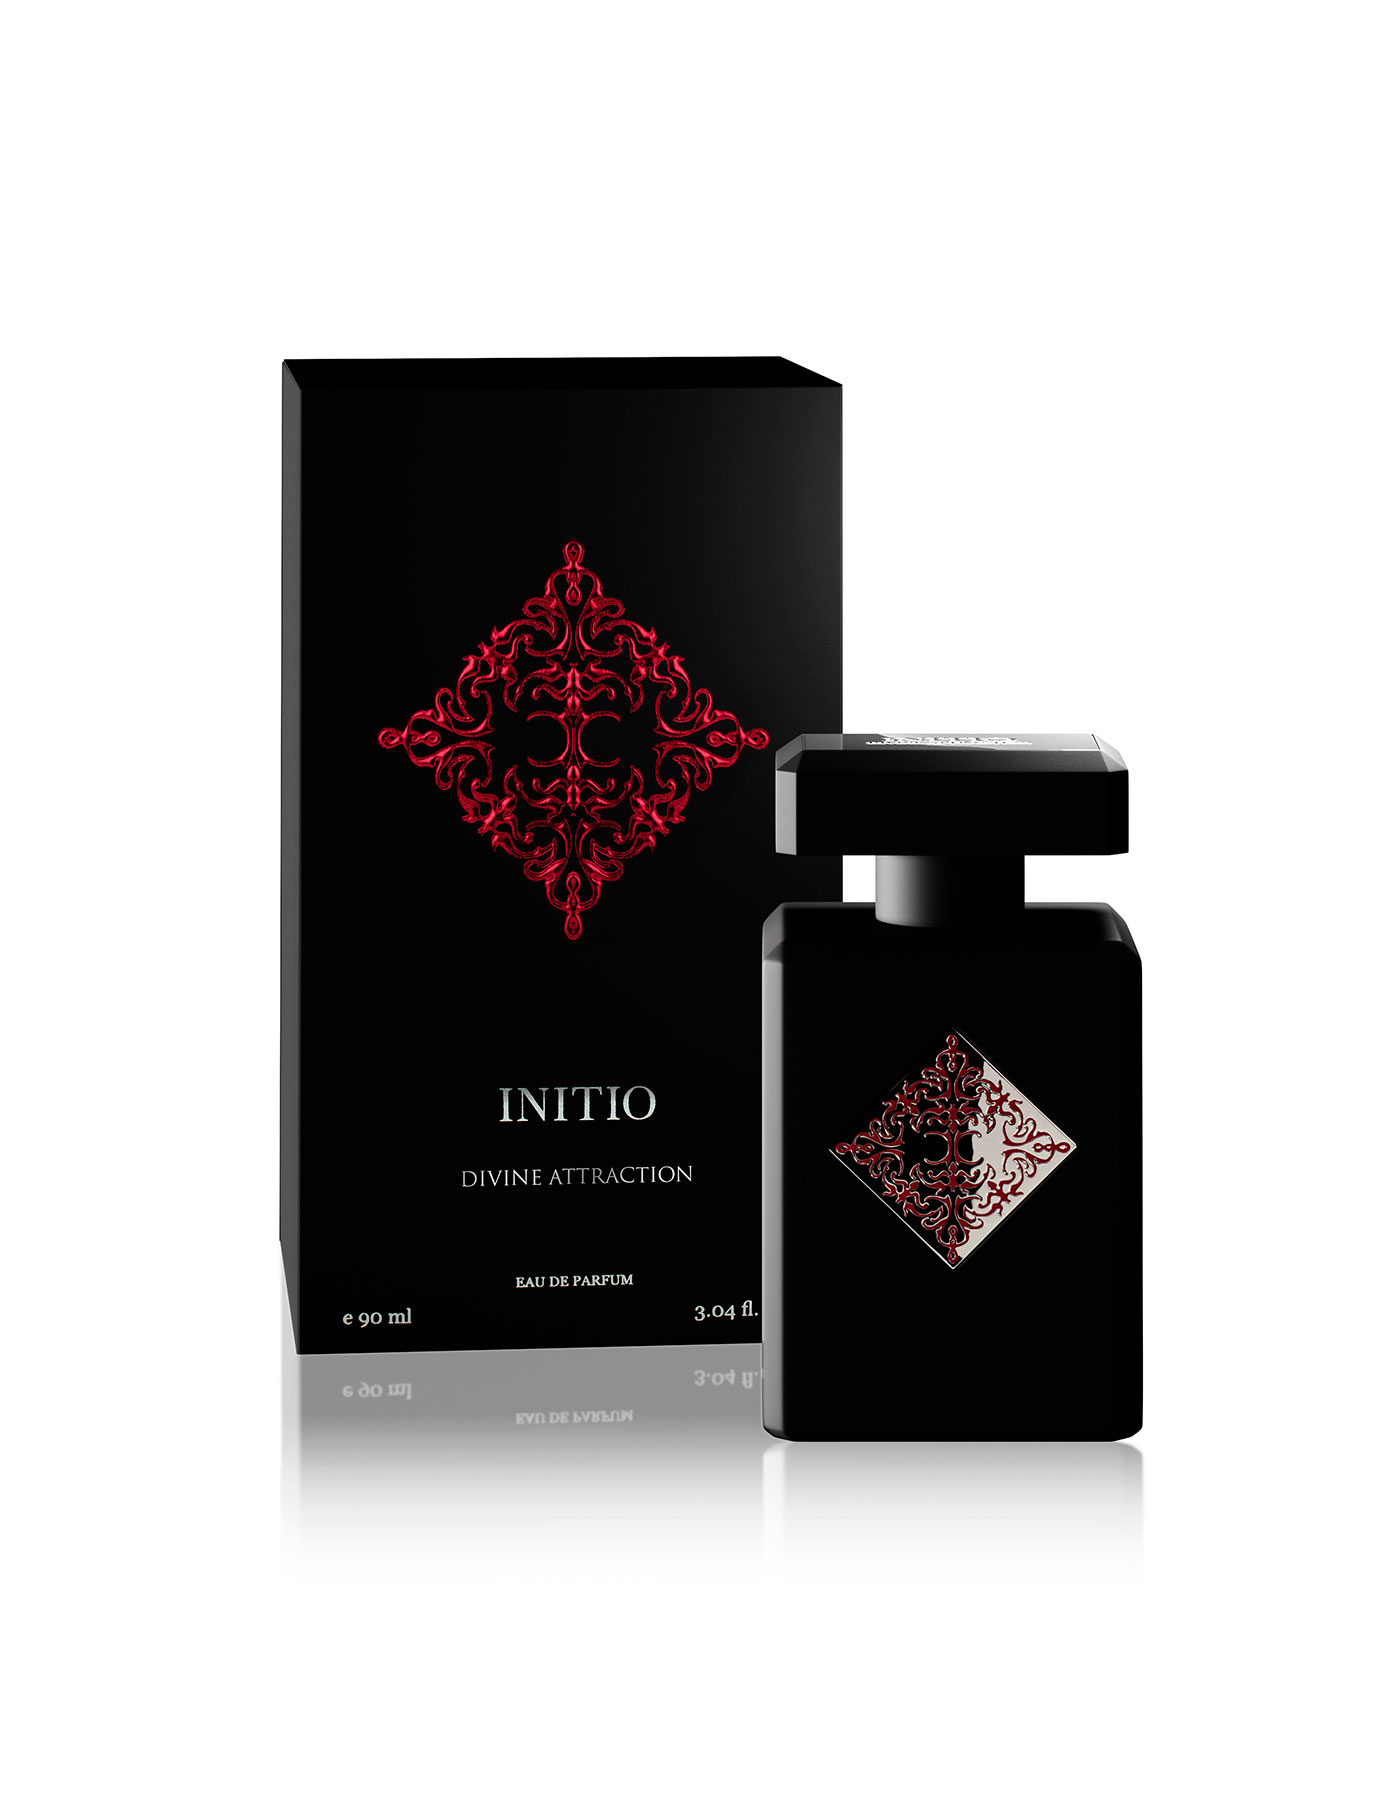 Divine Attraction by initio